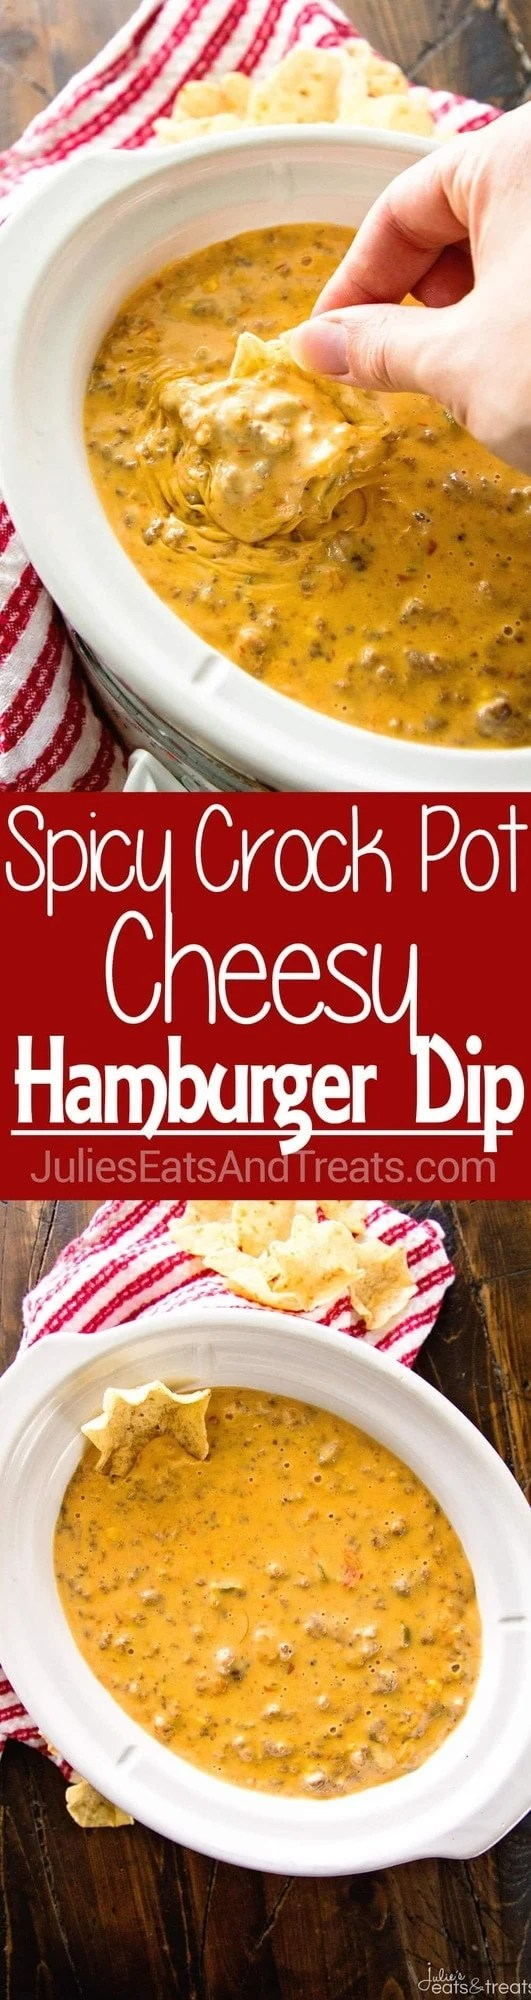 Spicy Crock Pot Cheesy Hamburger Dip ~ The BEST Cheese Dip Made in Your Slow Cooker! Perfect for a Party, Game Day or Just Because!